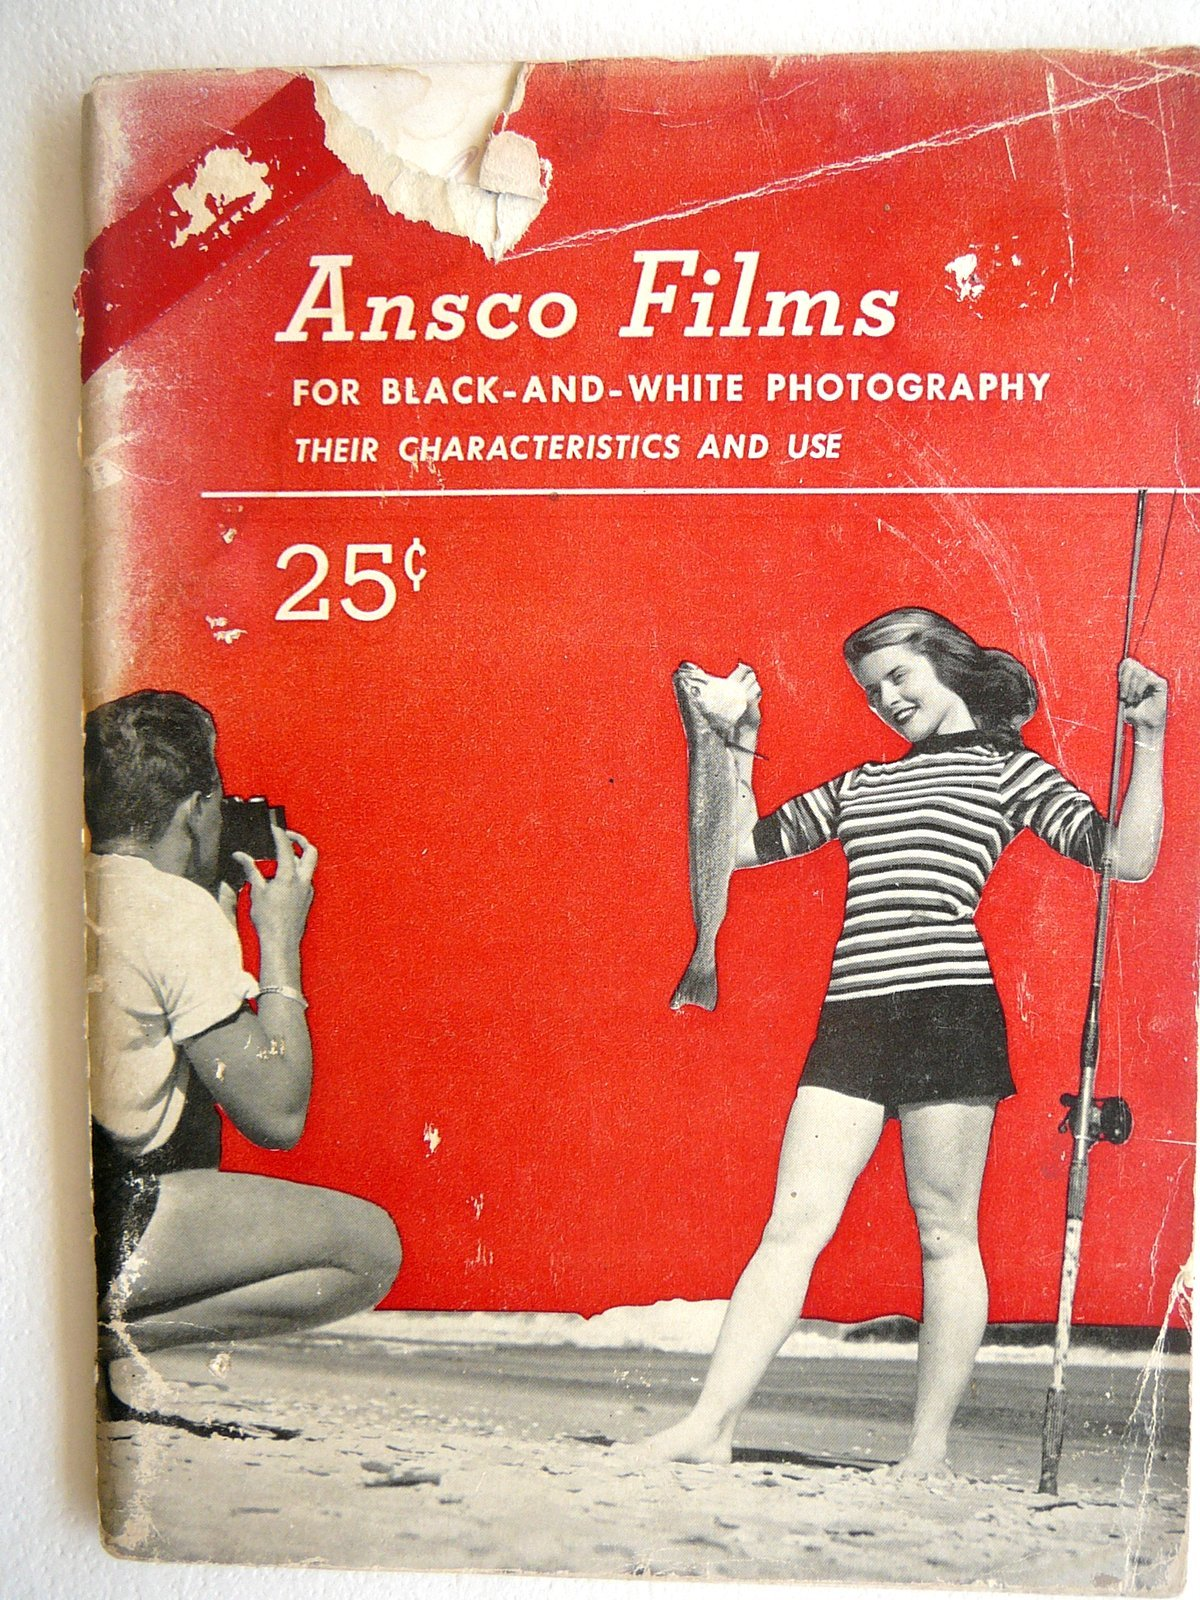 Ansco Films for Black and White Photography - Their Characteristics and Use